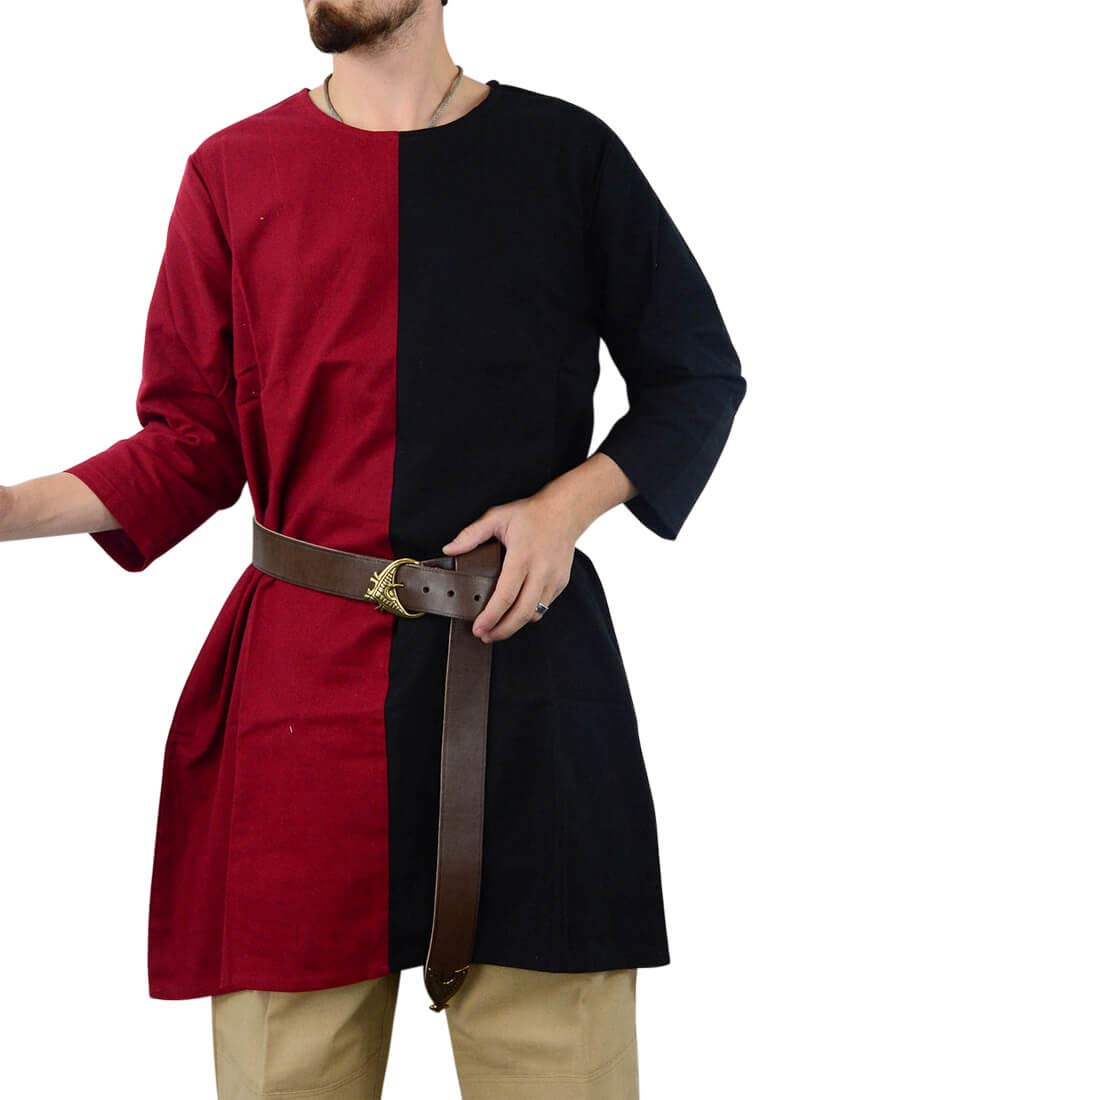 MEDIEVAL KNIGHT Men/'s Sleeveless Two-Tone Colors TABBARD TUNIC with LINING New